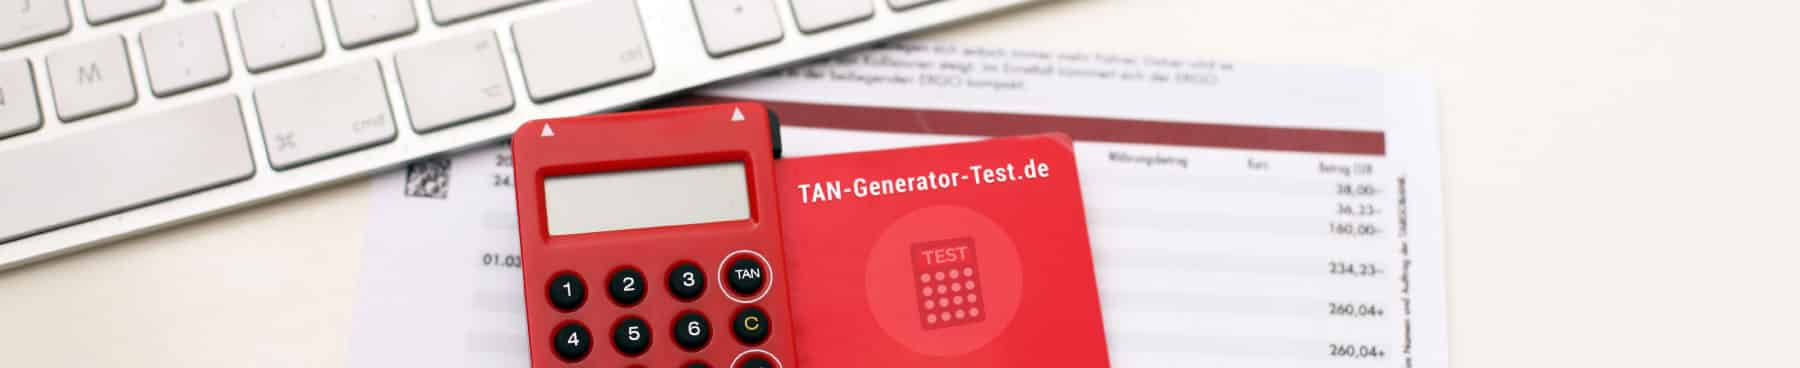 tan-generator-test-header